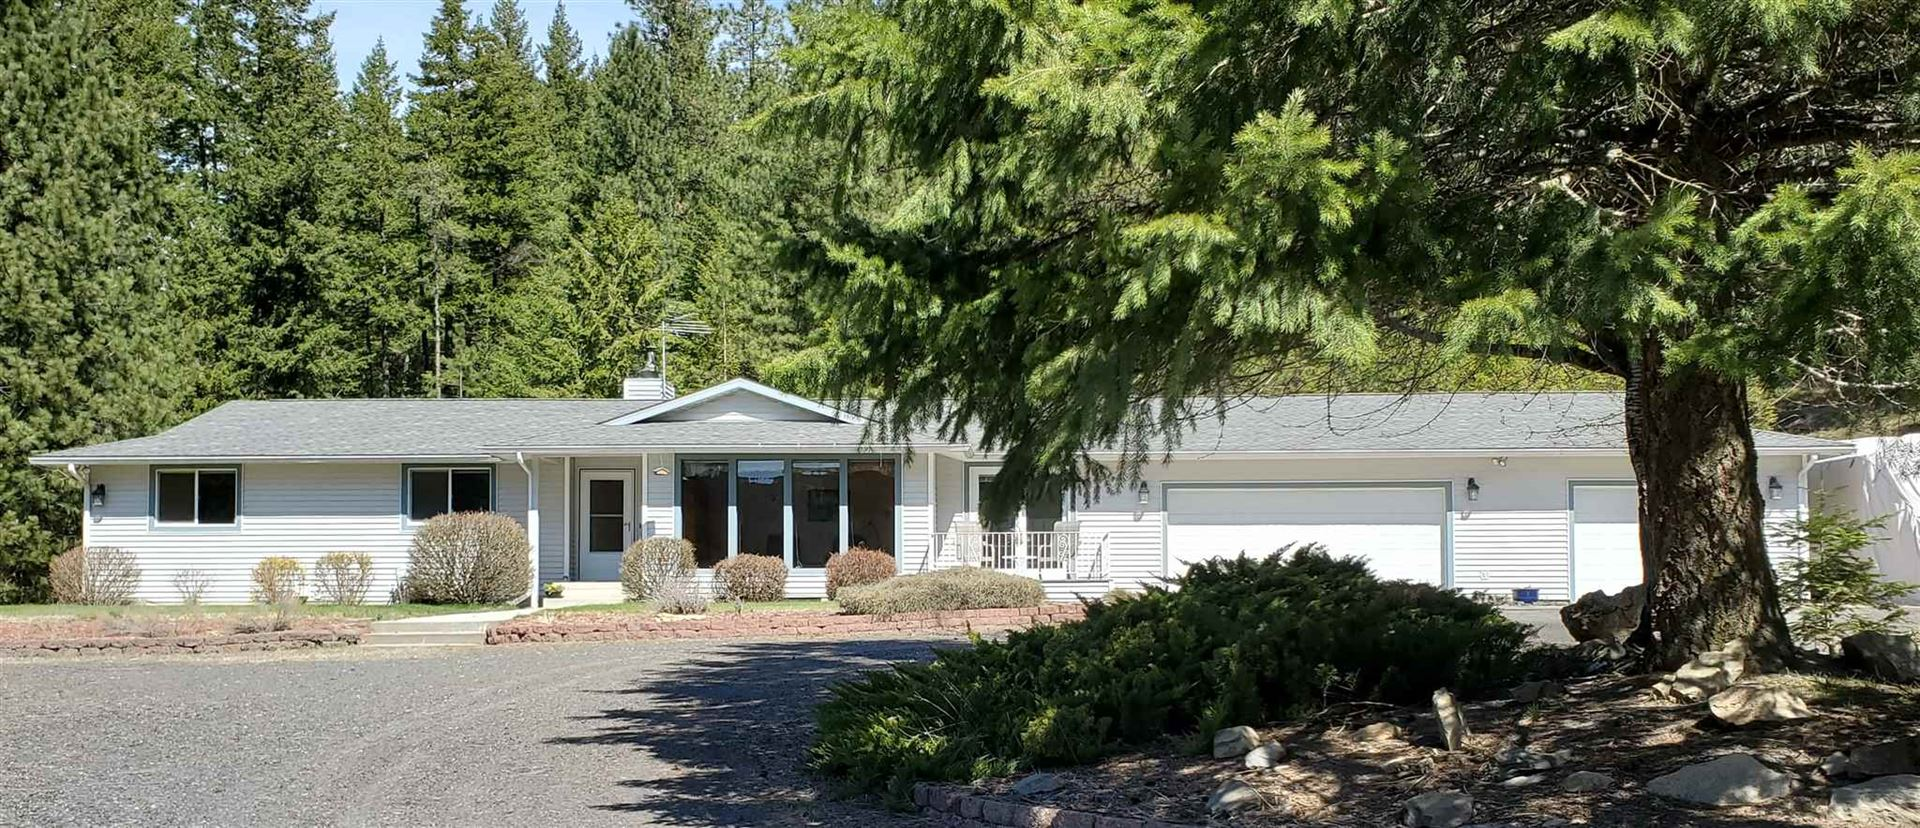 8610 N Campbell Rd, Otis Orchards, WA 99027 - #: 202114072